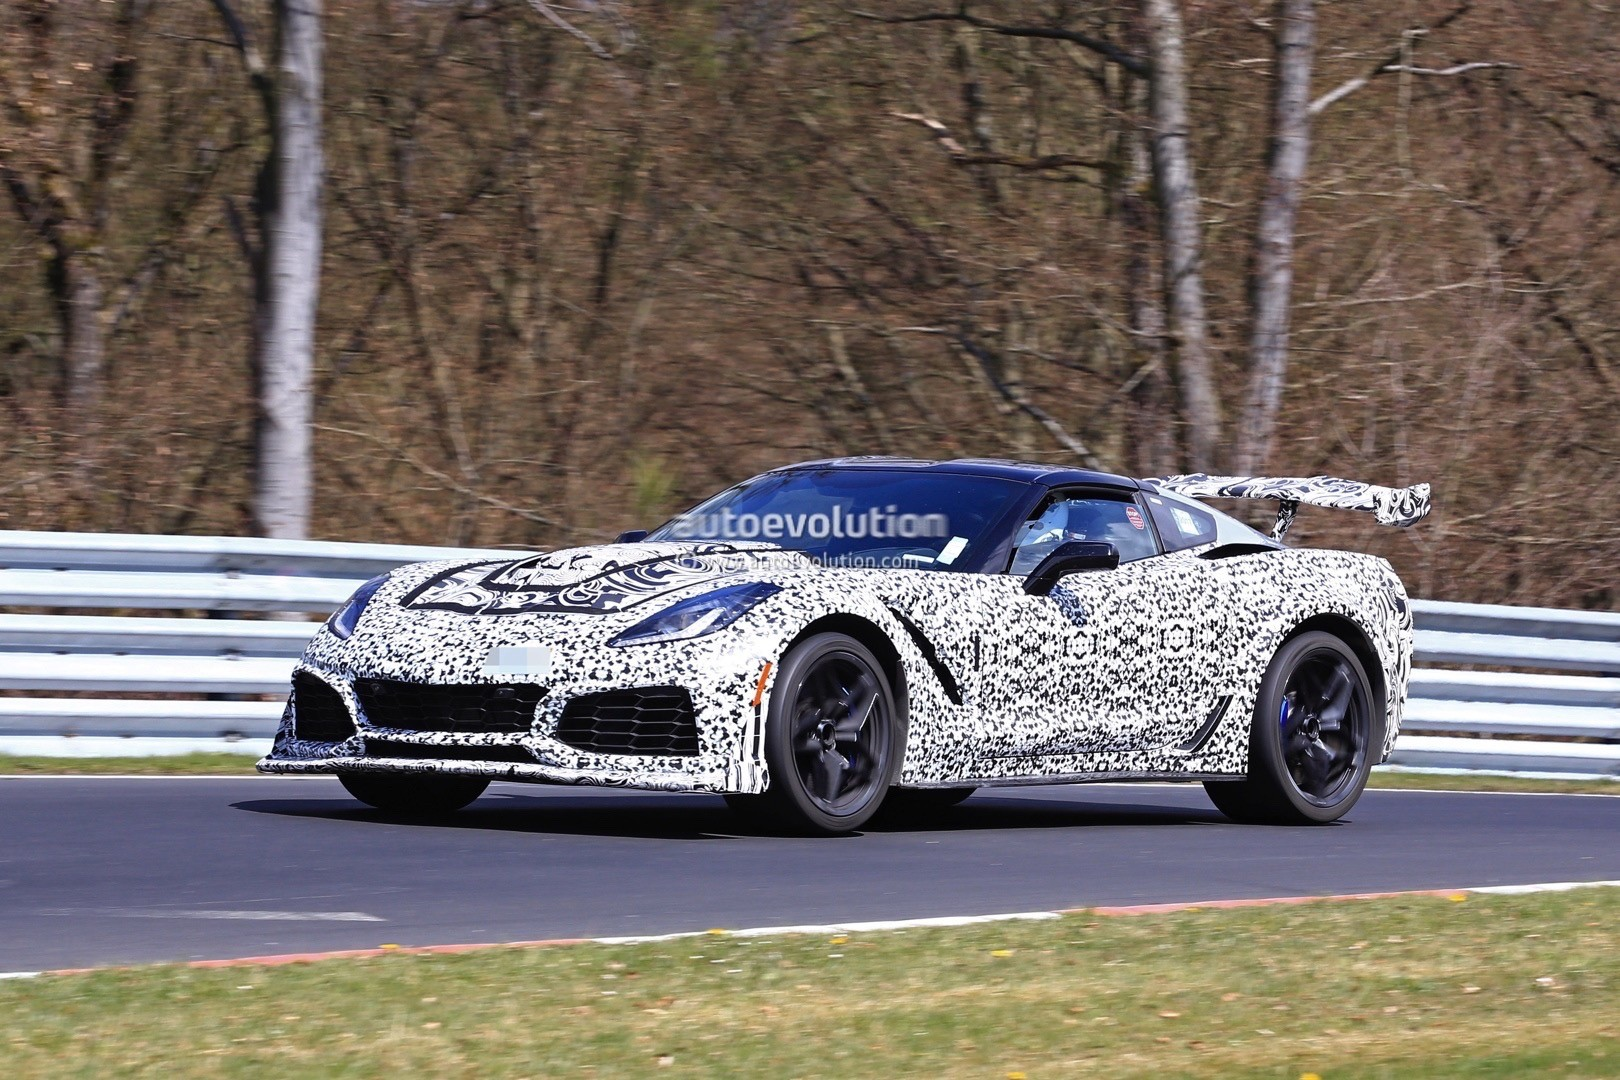 2018 corvette zr1 confirmed with supercharged lt5 v8 engine autoevolution. Black Bedroom Furniture Sets. Home Design Ideas